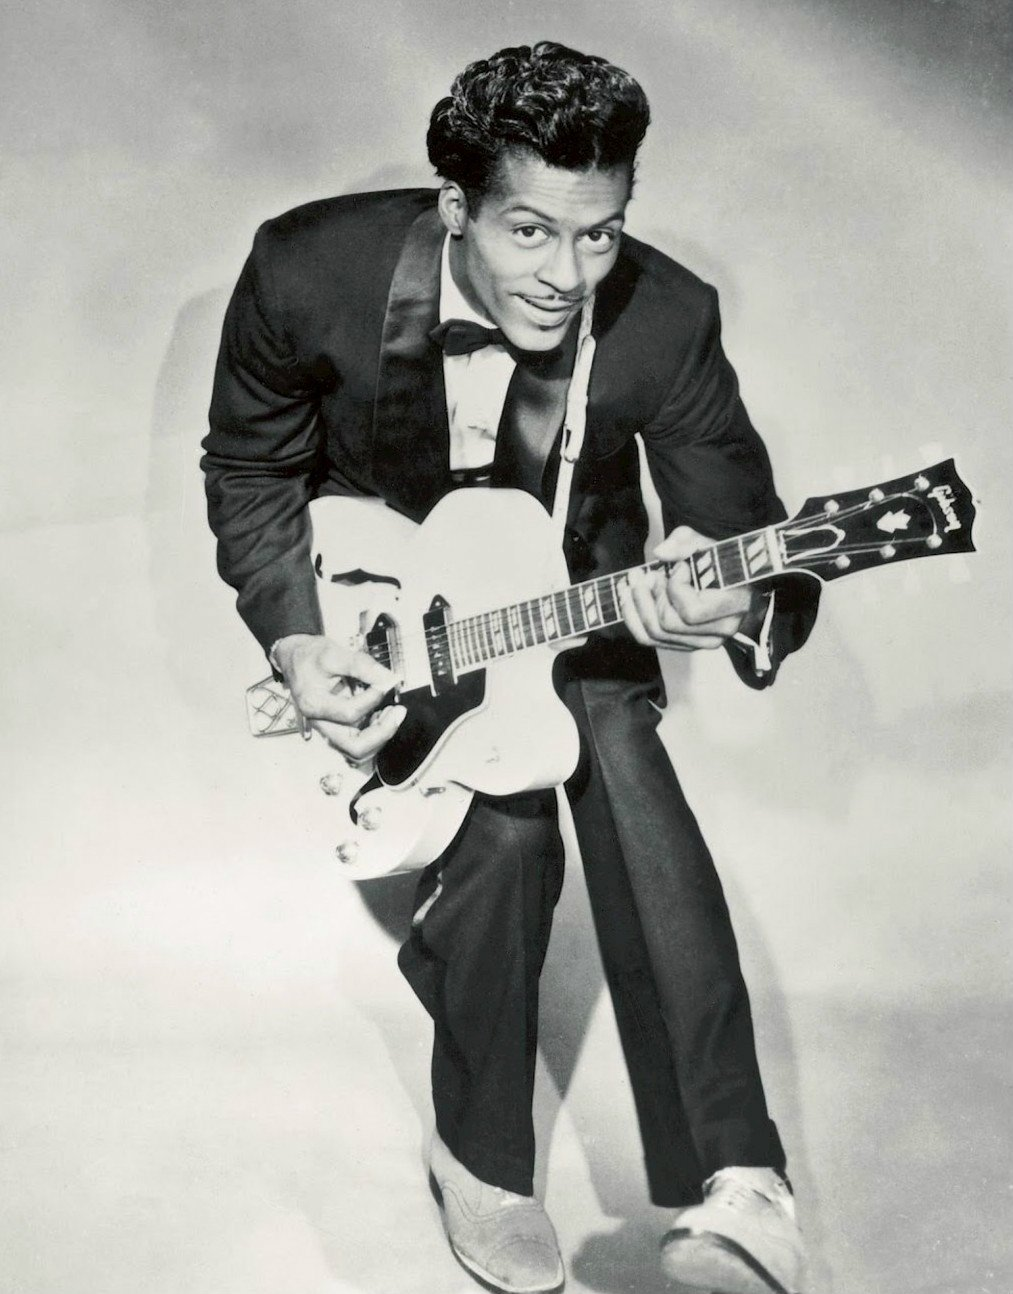 Chuck Berry stooping for his duck walk, one of the greatest guitar players who brought rock n roll to the masses